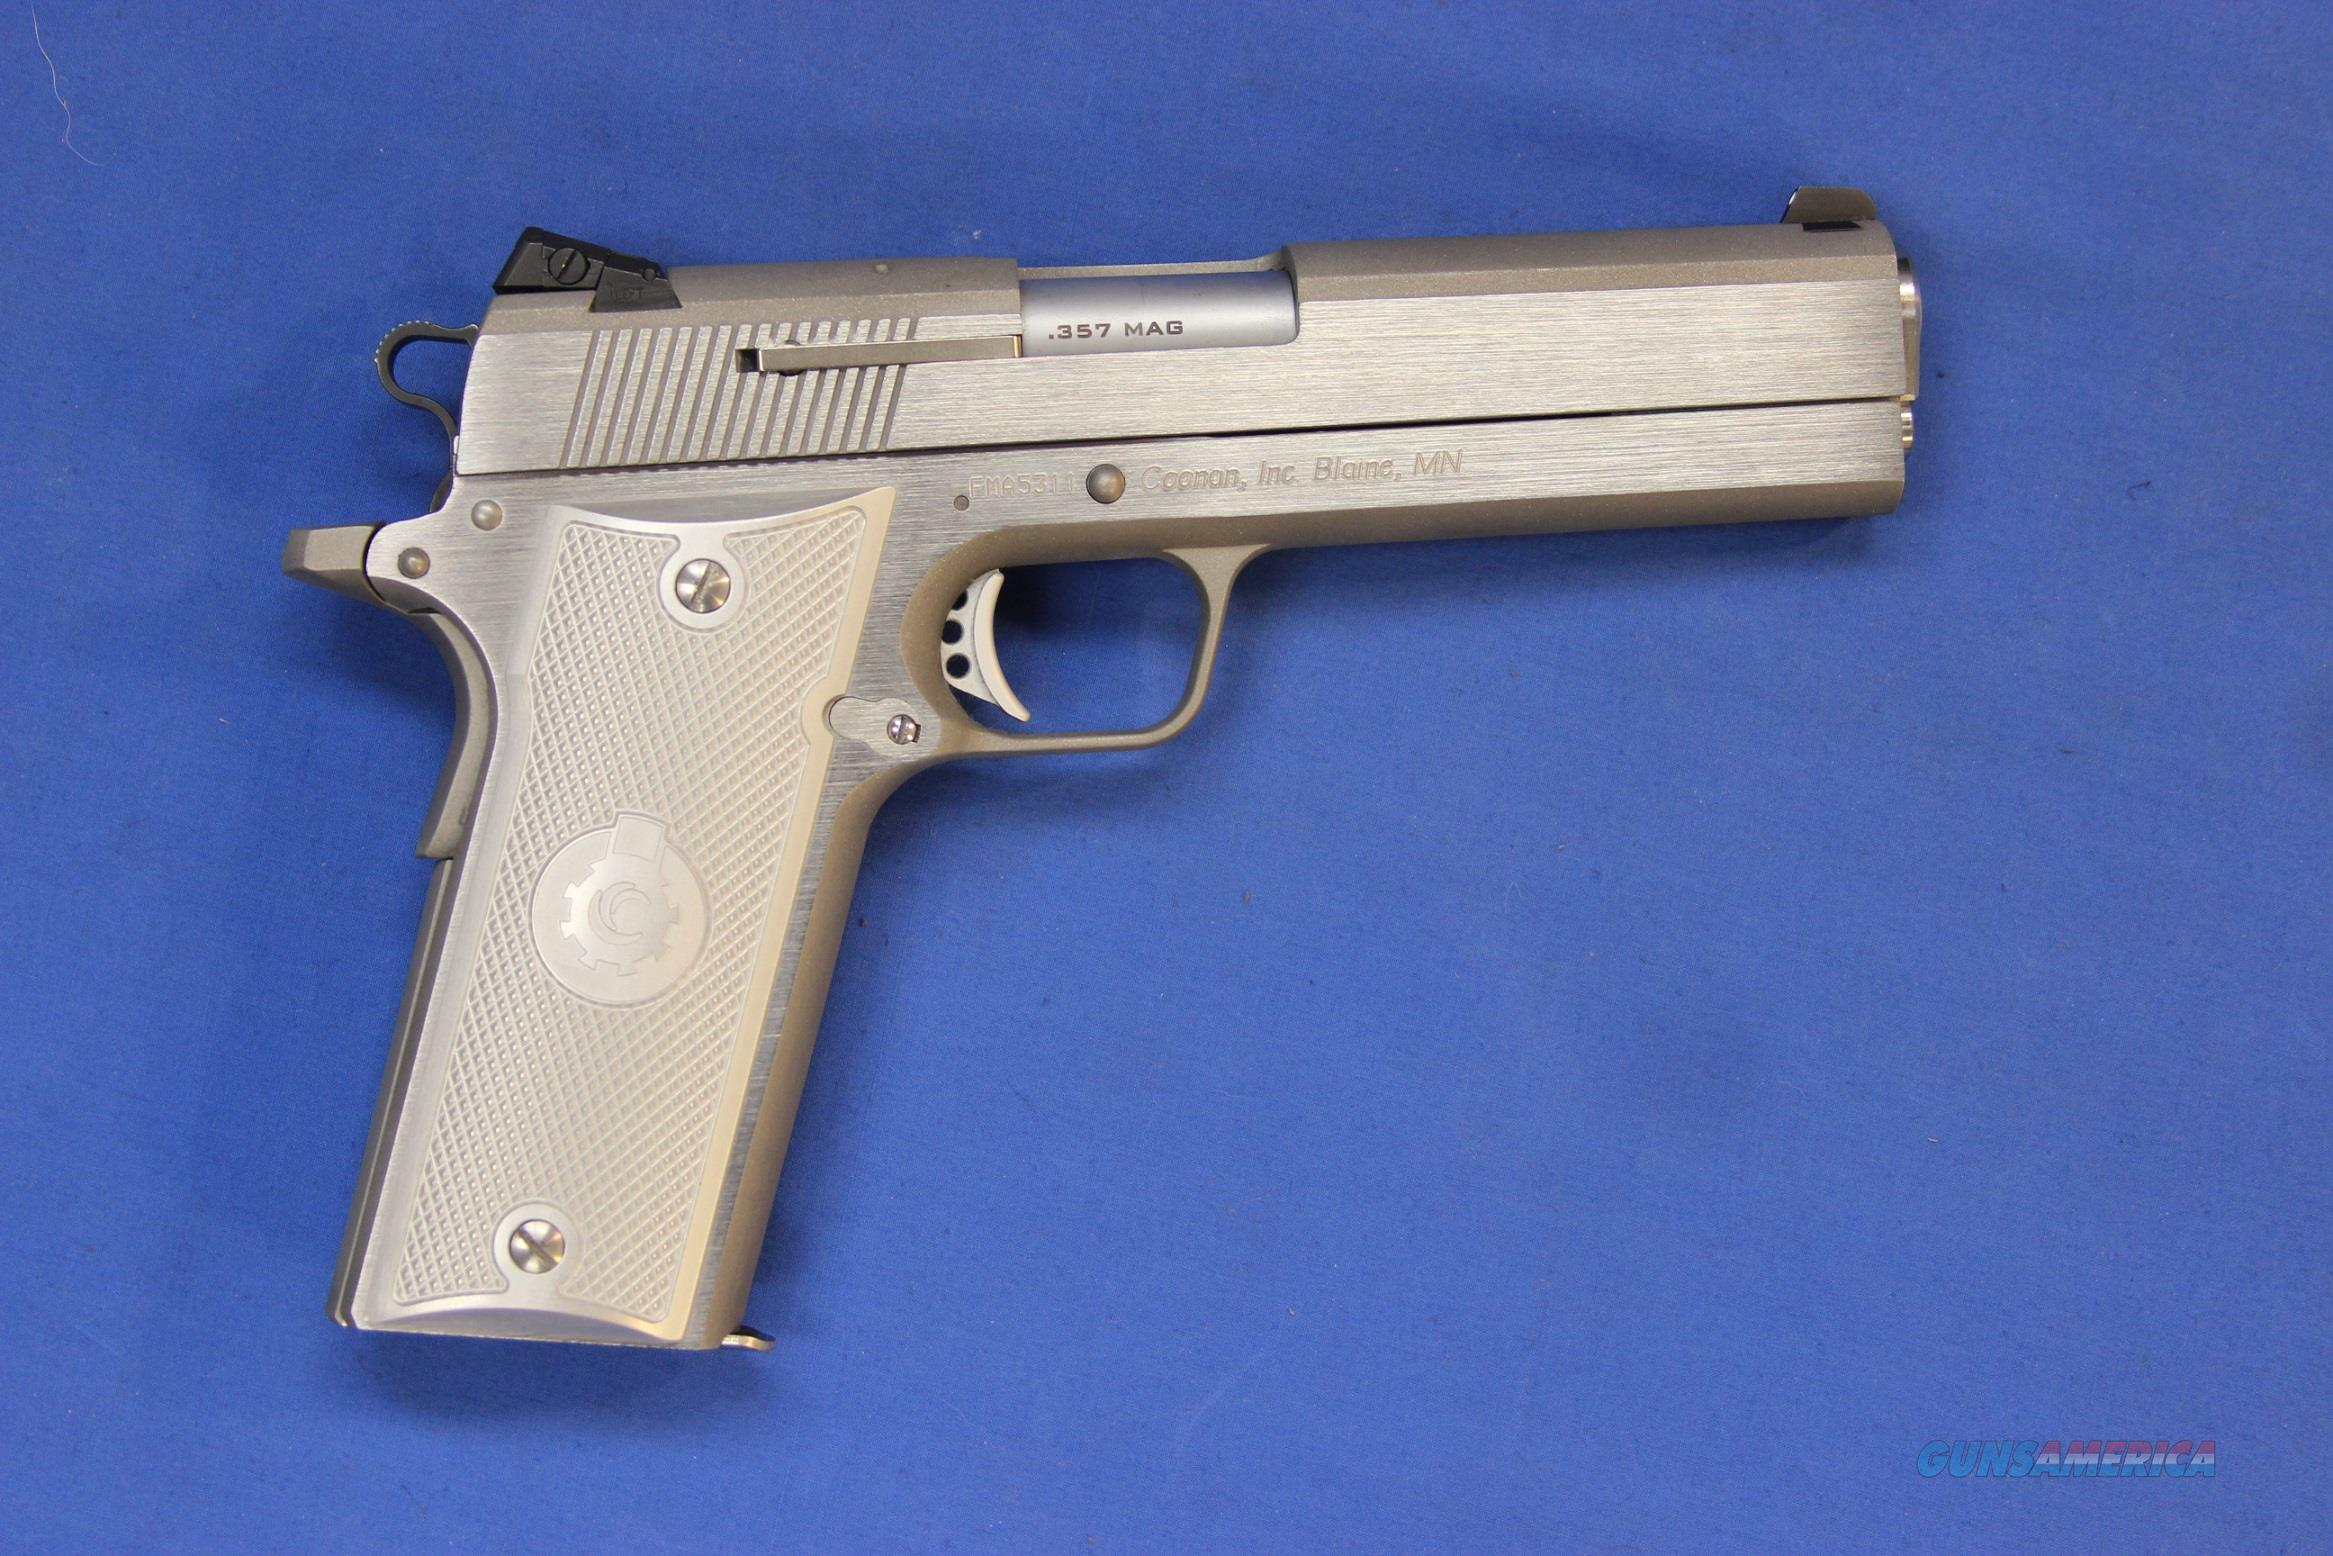 COONAN CLASSIC SS .357 MAG w/BOX - 2 MAGS - EXTRA GRIPS  Guns > Pistols > Coonan Arms Pistols